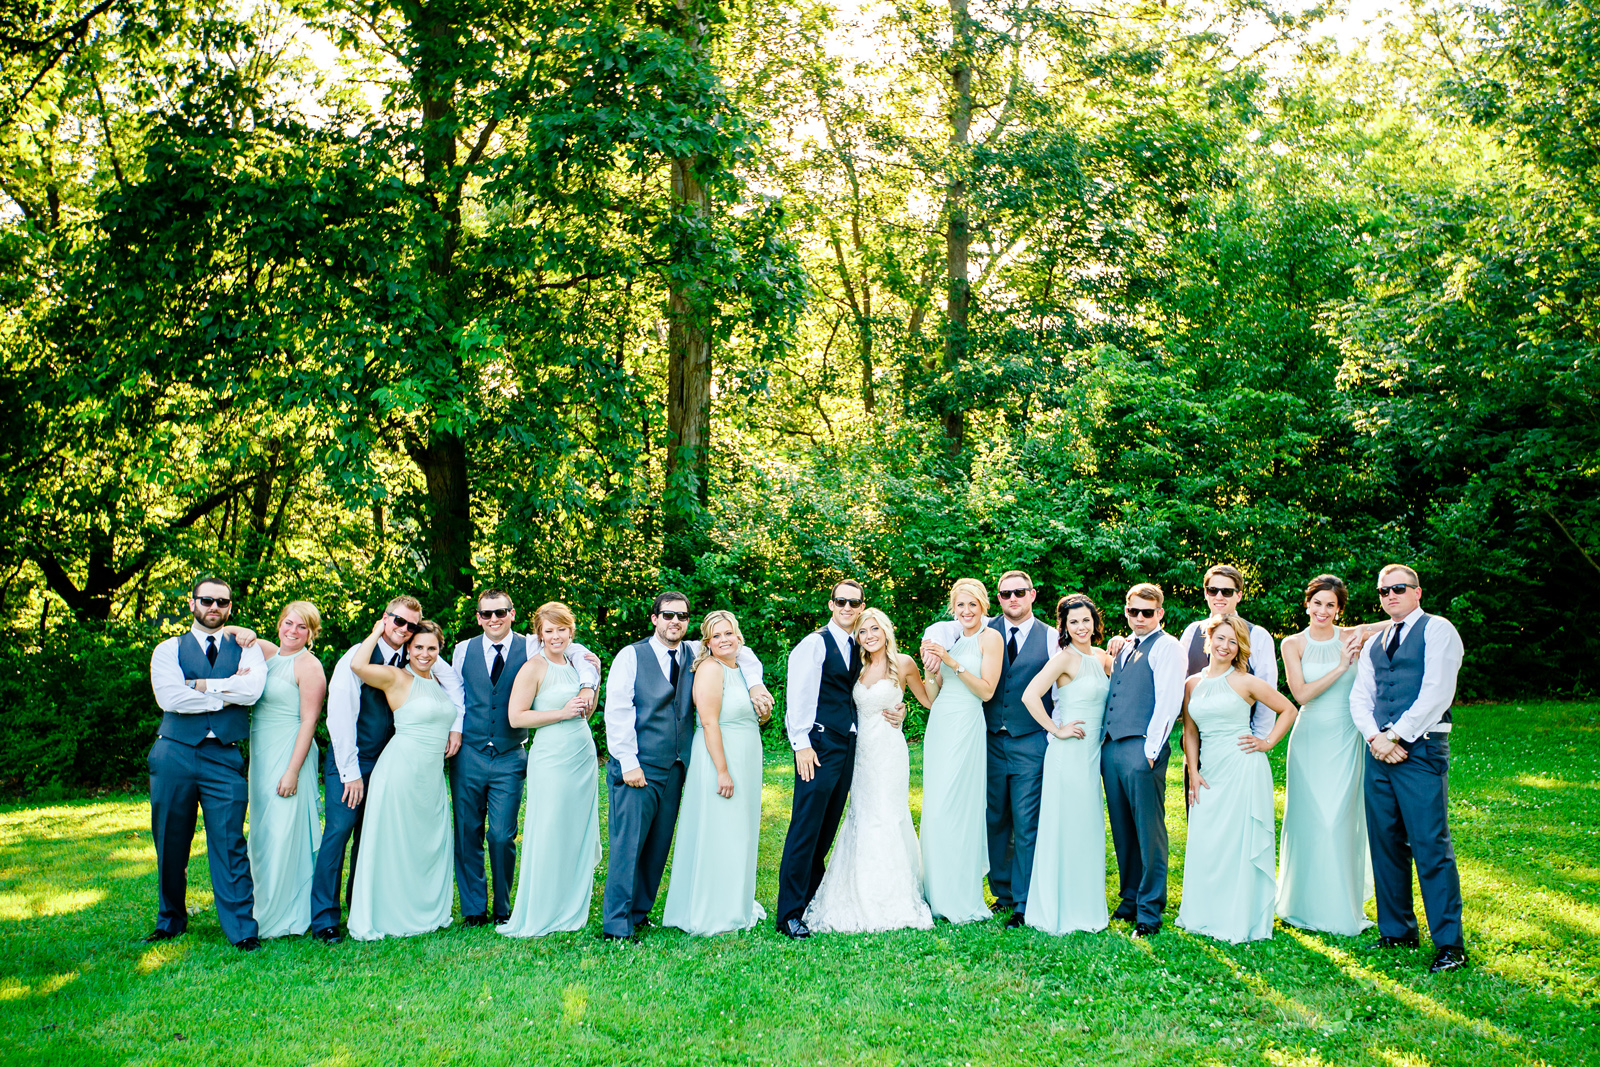 Millstadt Wedding Party Photos with St. Louis Wedding Photographers by Oldani Photography 12.jpg